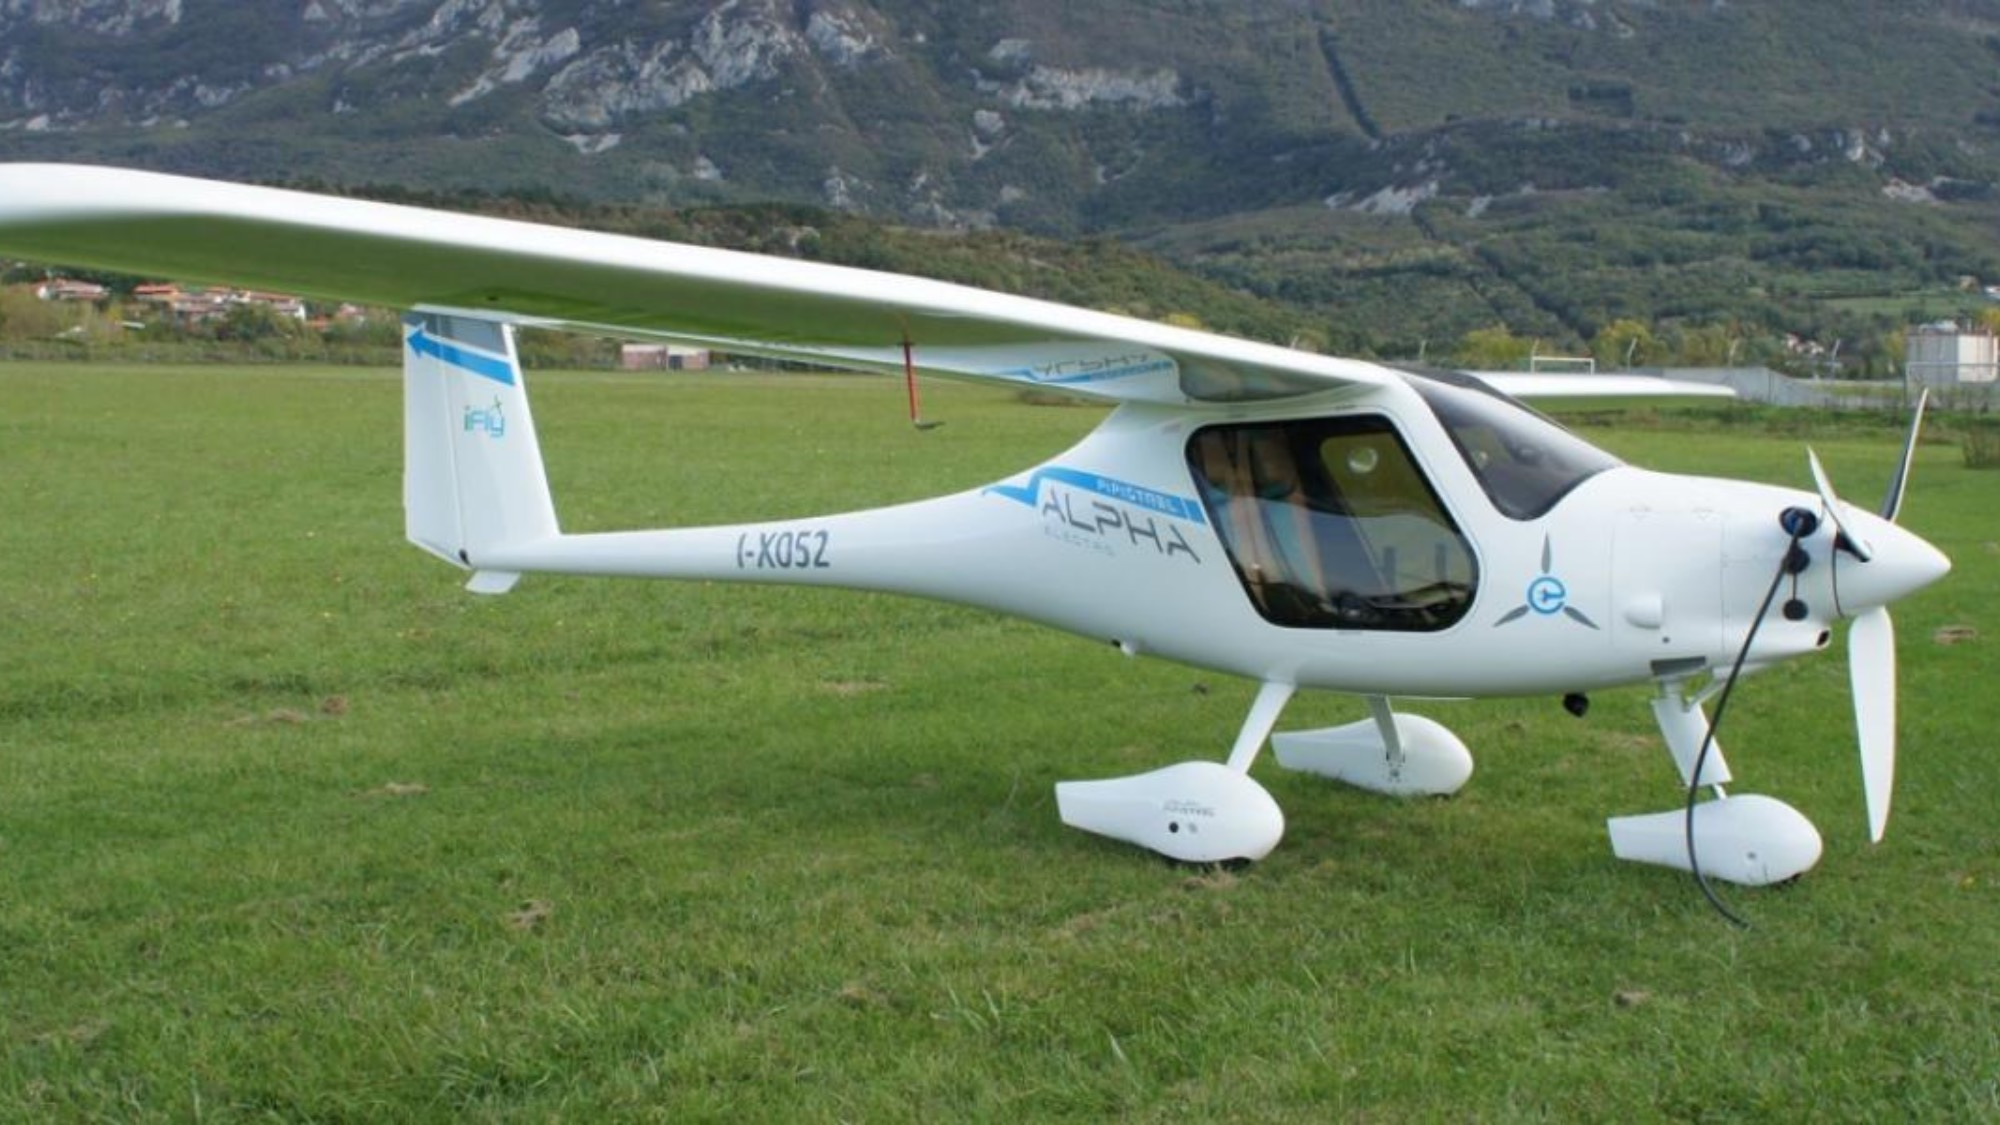 Small plane on grass